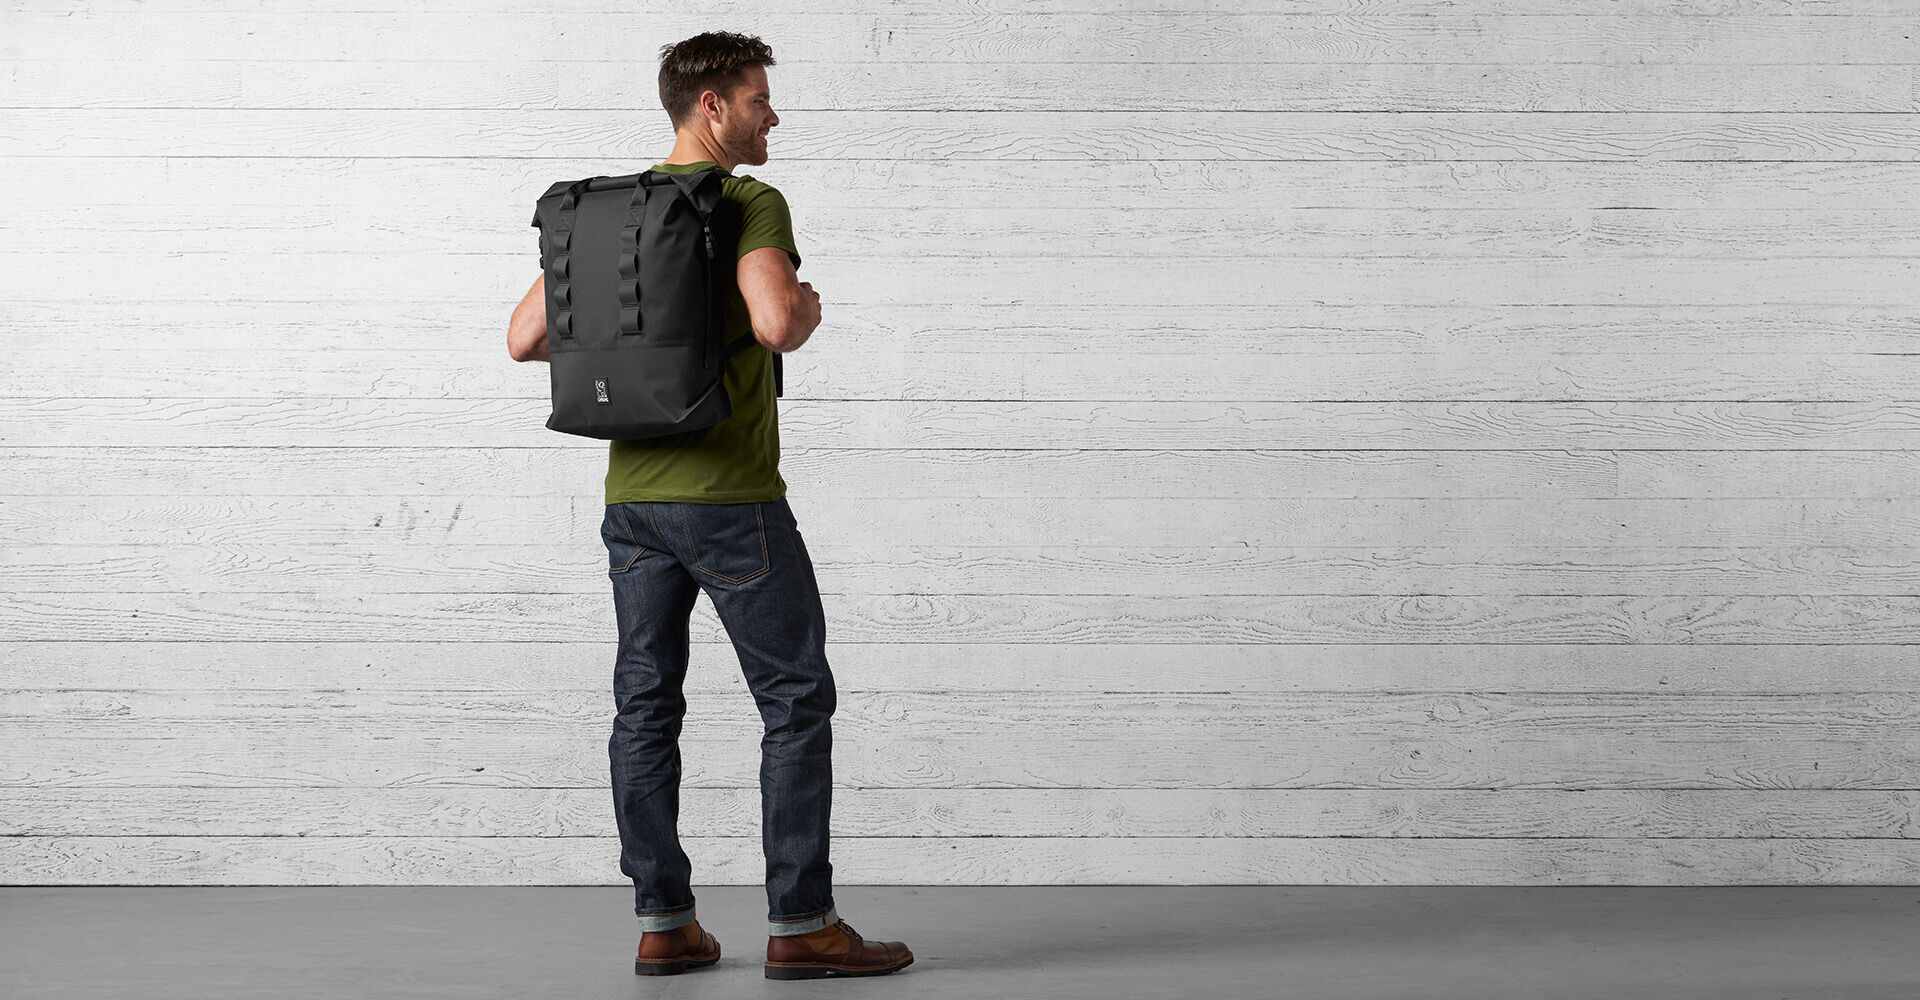 Excursion Rolltop 37 Backpack in Black - wide view.